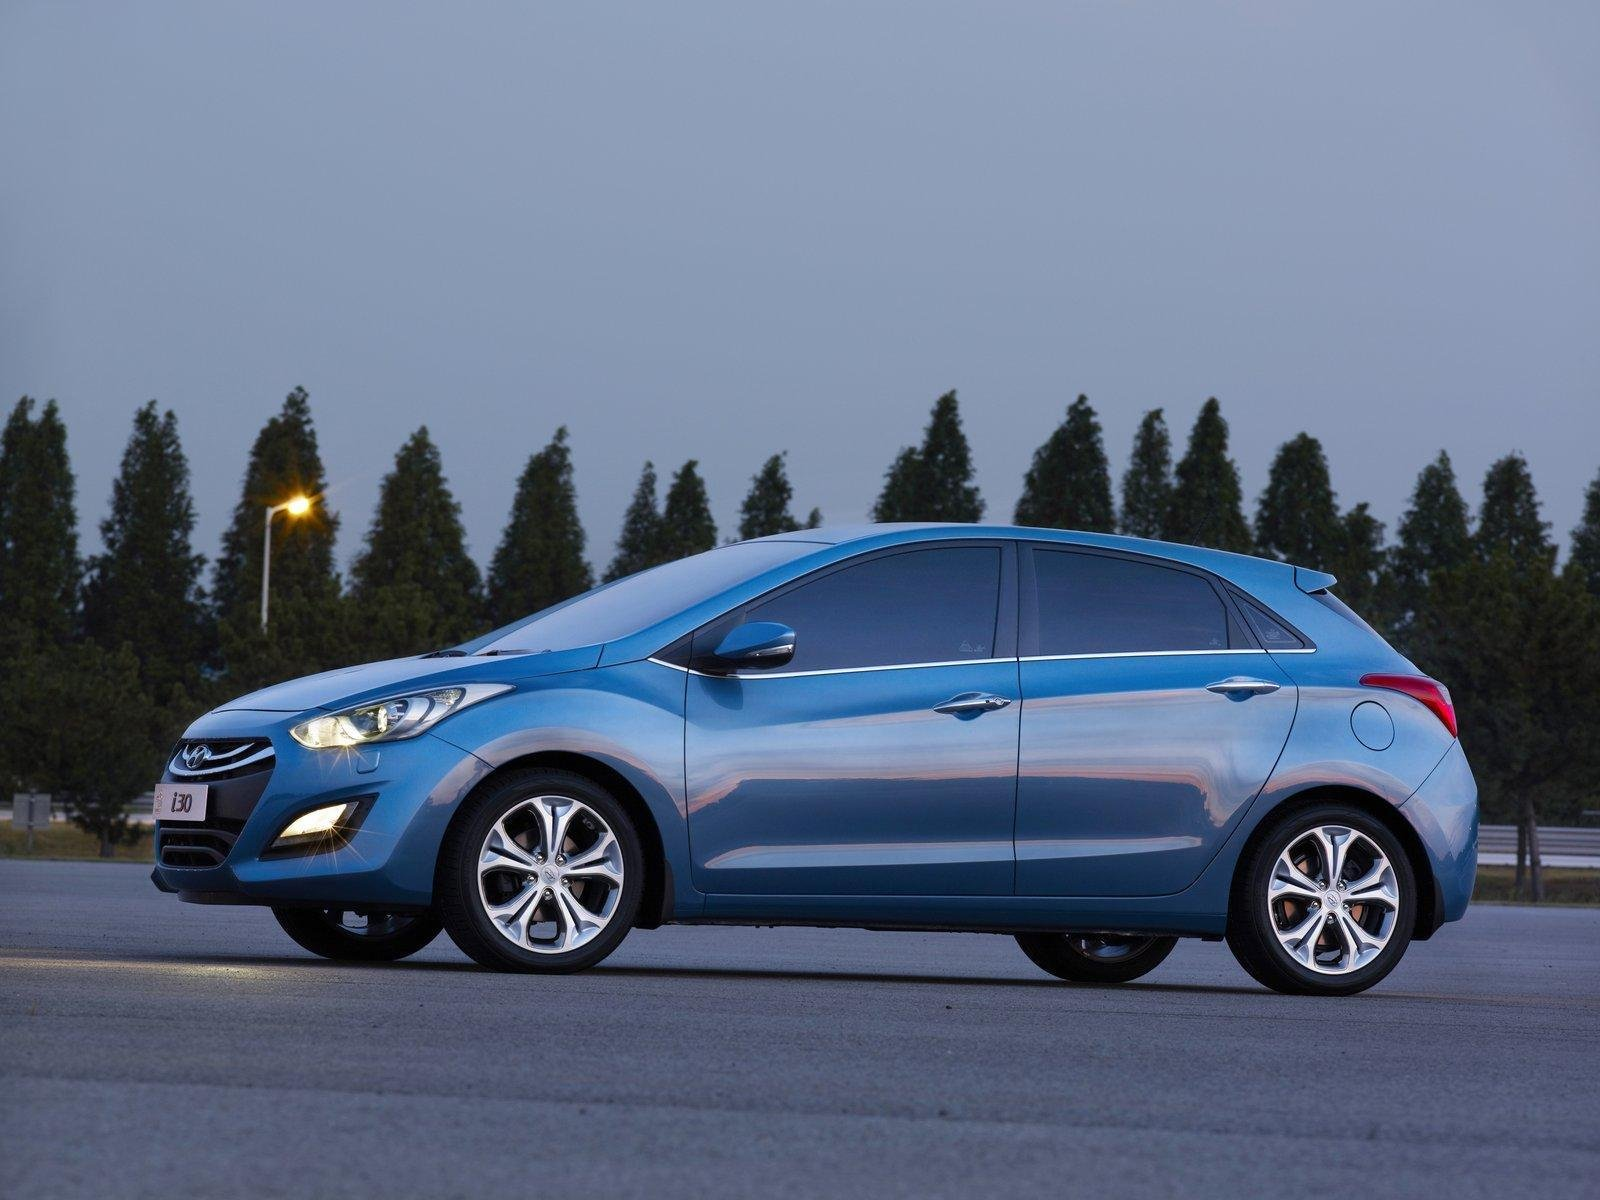 2012 hyundai i30 elantra touring picture 417727 car review top speed. Black Bedroom Furniture Sets. Home Design Ideas